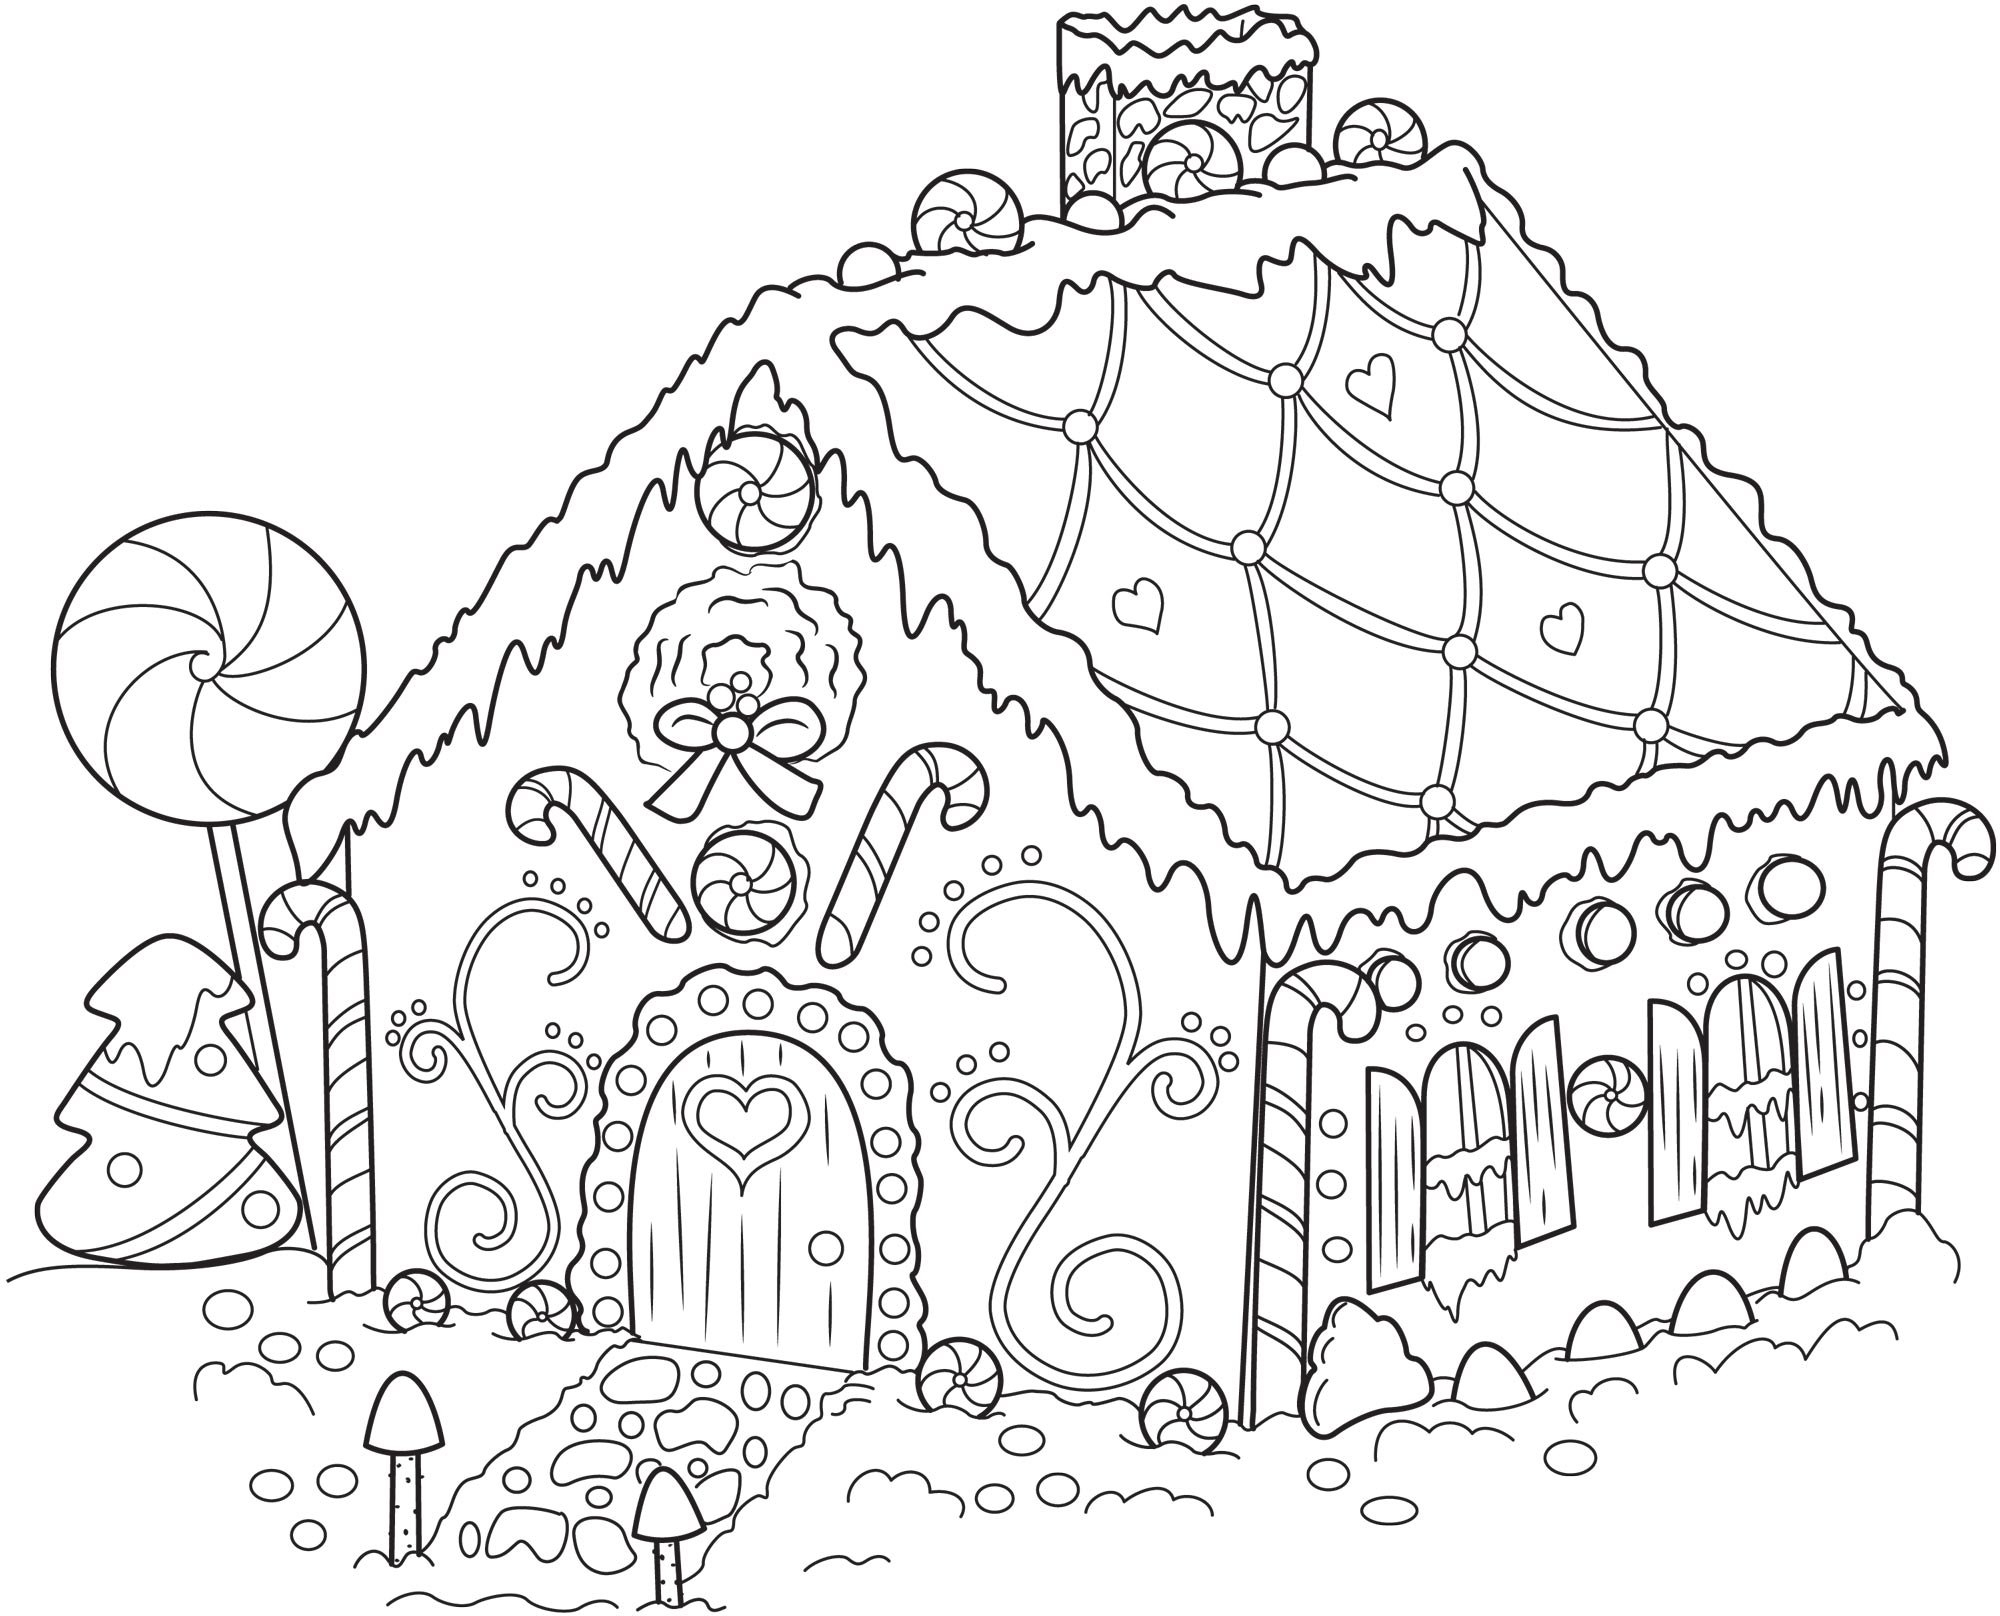 crayola free coloring pages - christmas coloring pages difficult